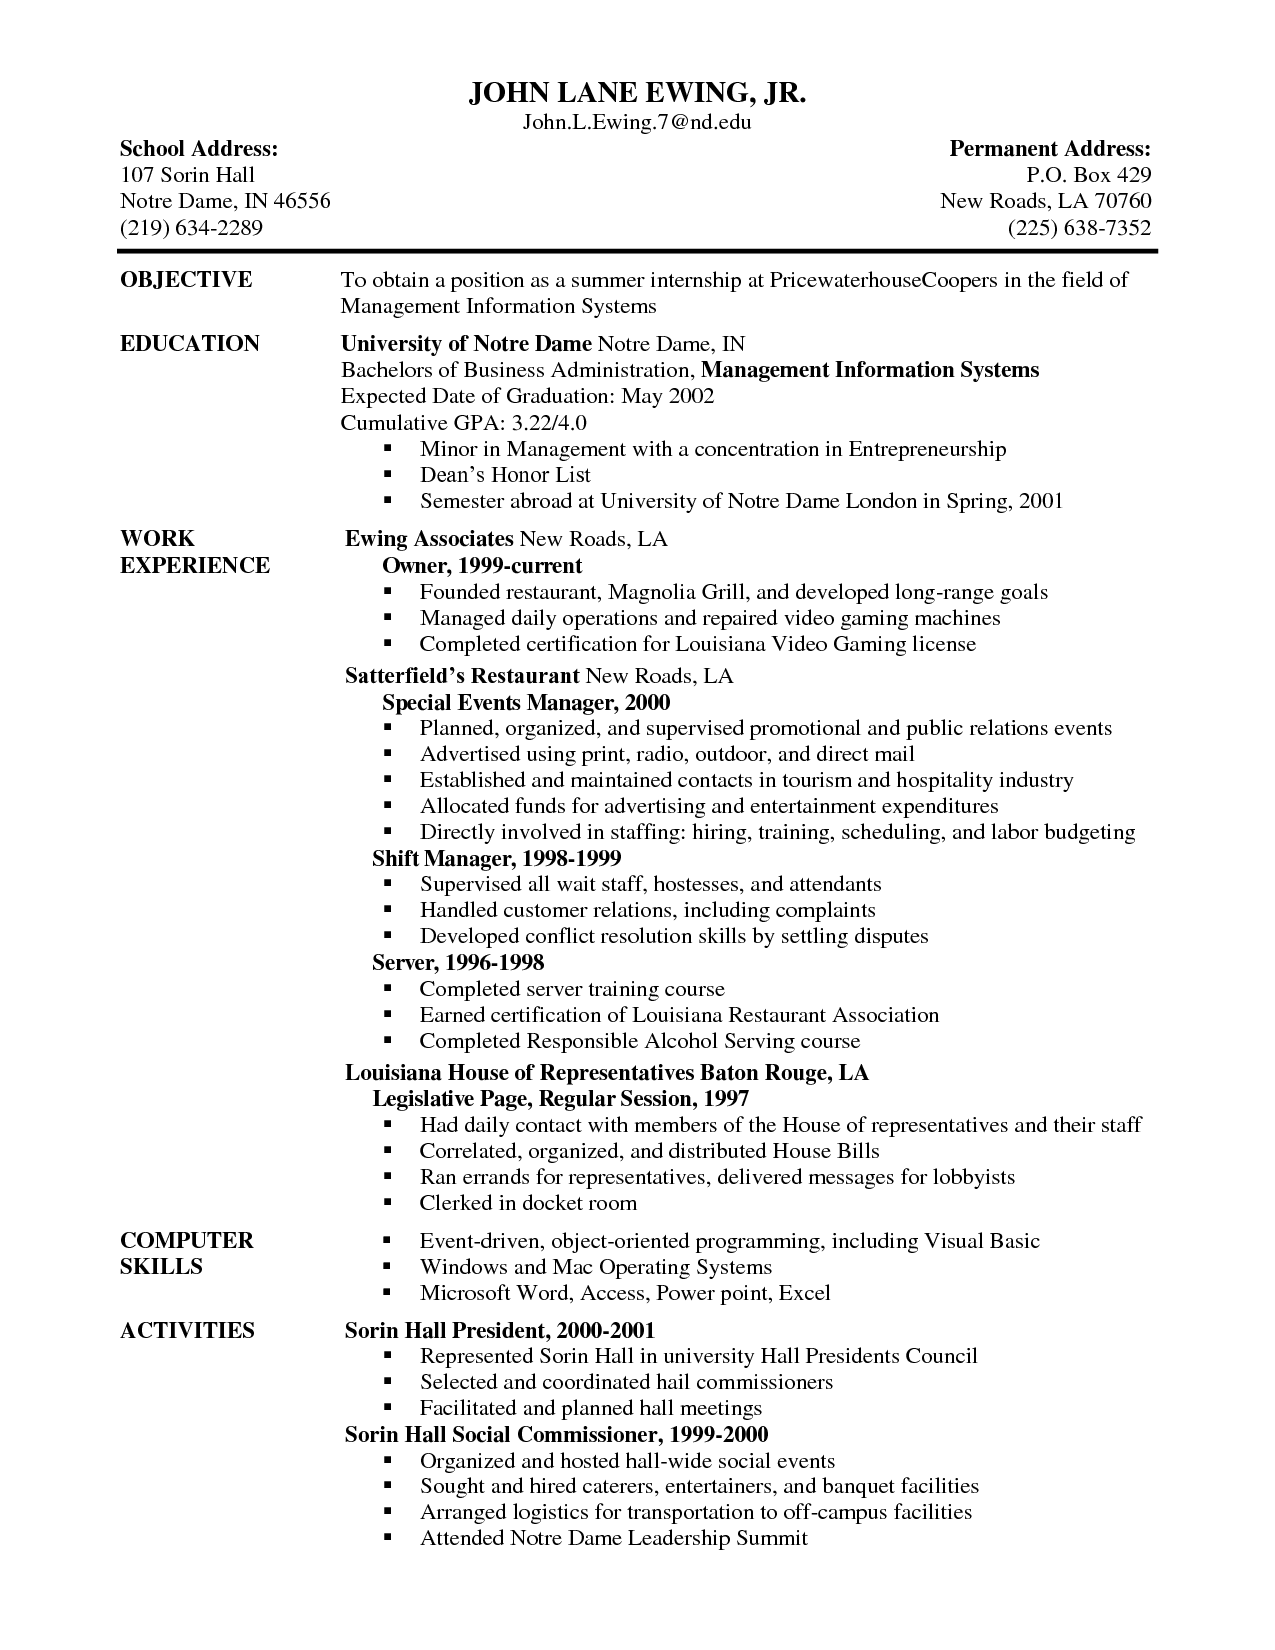 Server Skills Resume Classy Server Resume Skills Template Doc Serving Job Examples Description Inspiration Design